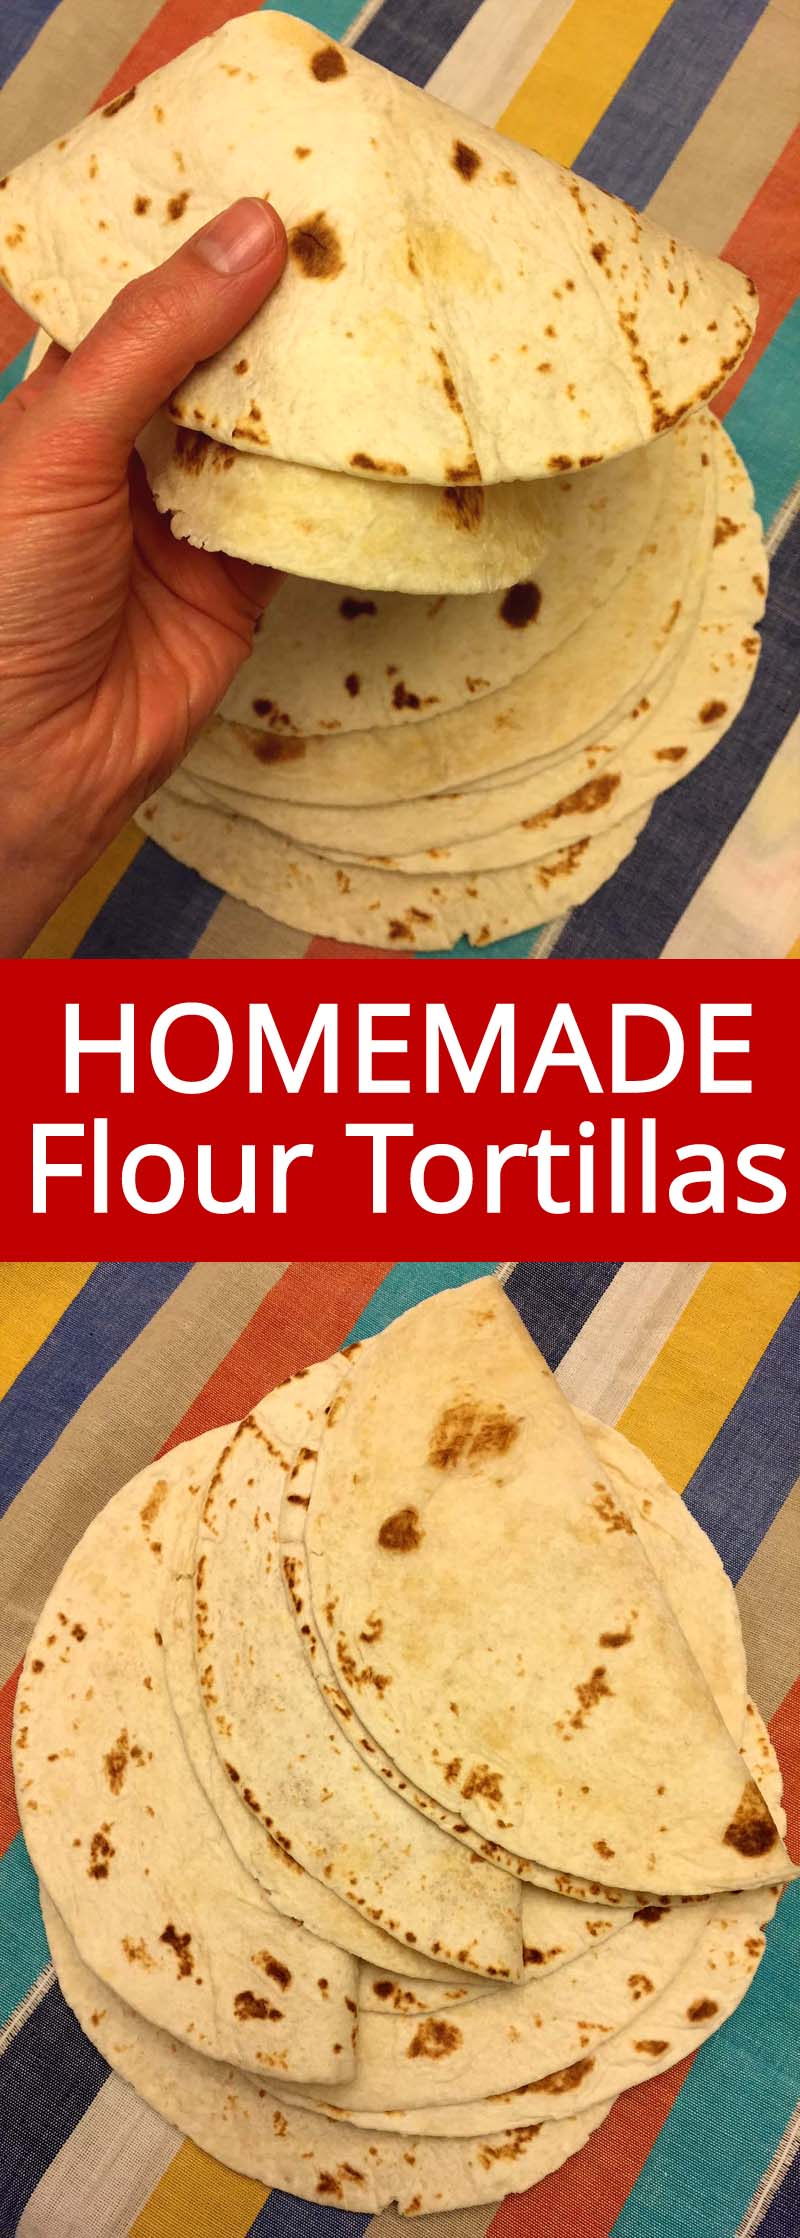 Homemade flour tortillas taste so much better than store-bought! Fresh warm Mexican tortillas are so delicious and they are really easy to make too!